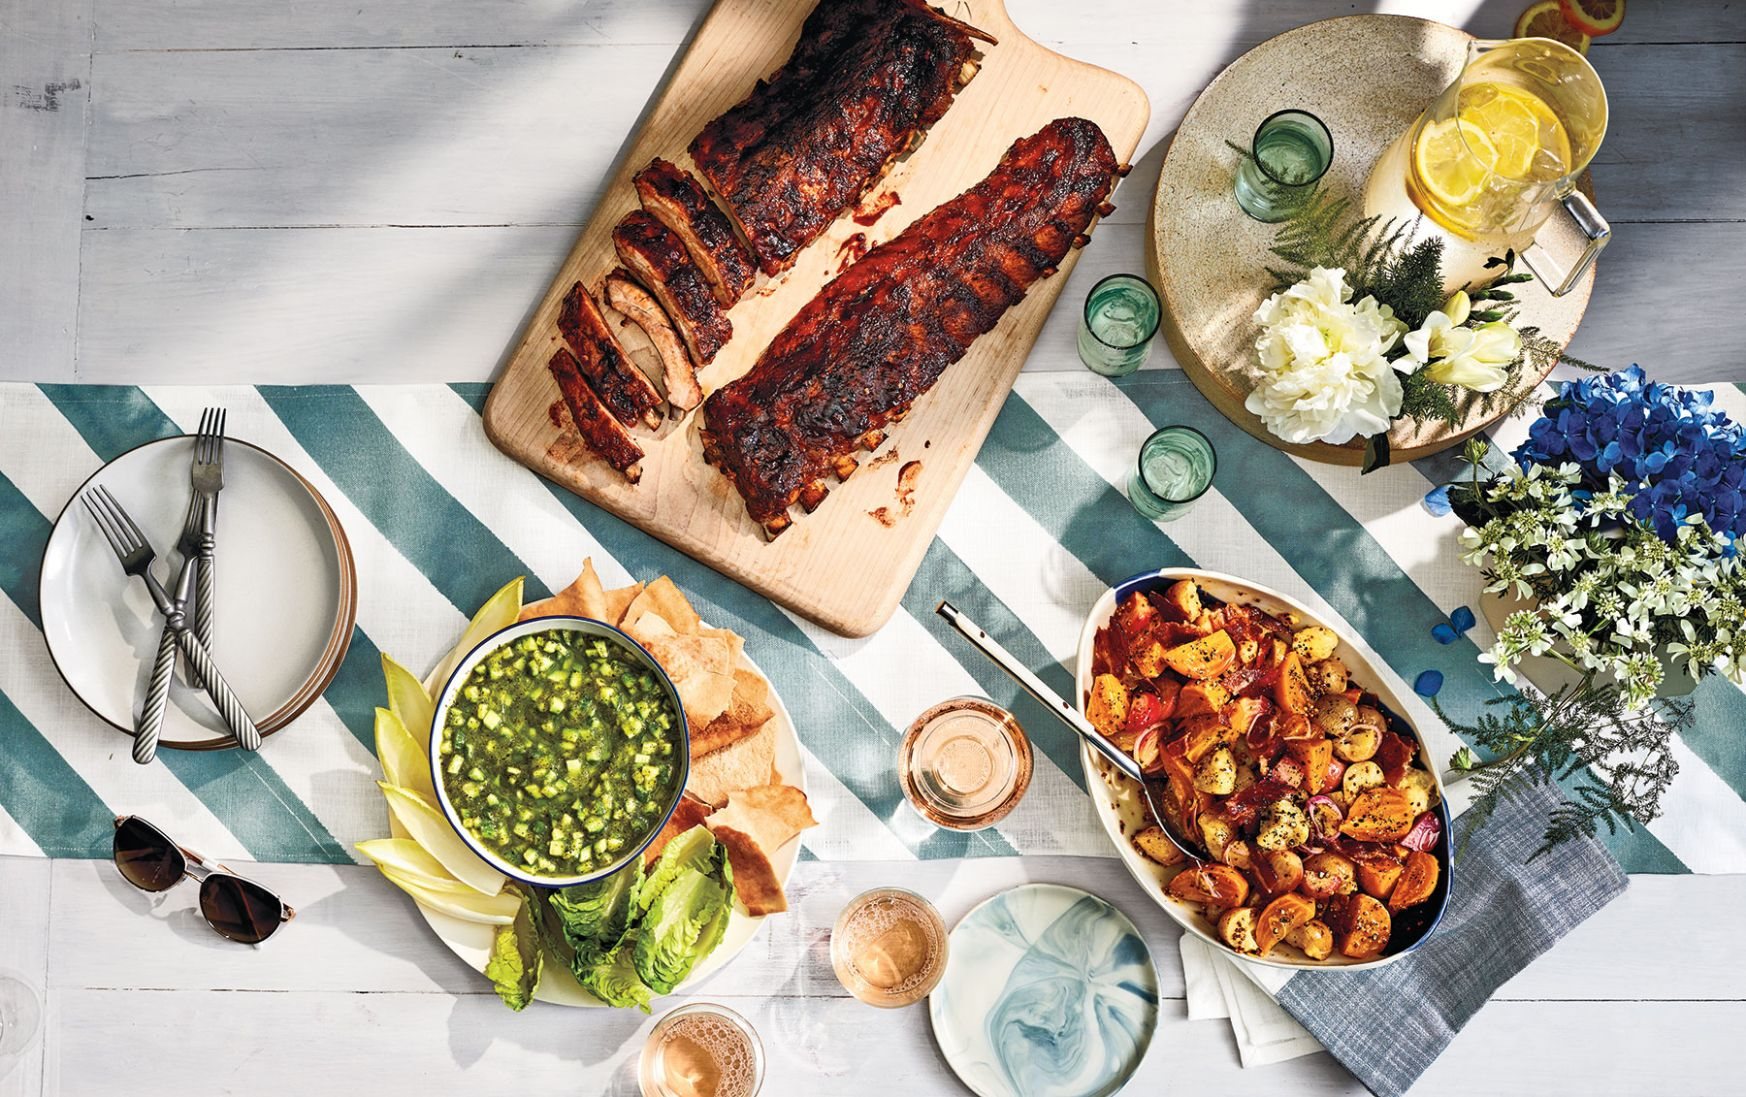 Cookout Menu: 12 Great Recipes for Summer | Real Simple